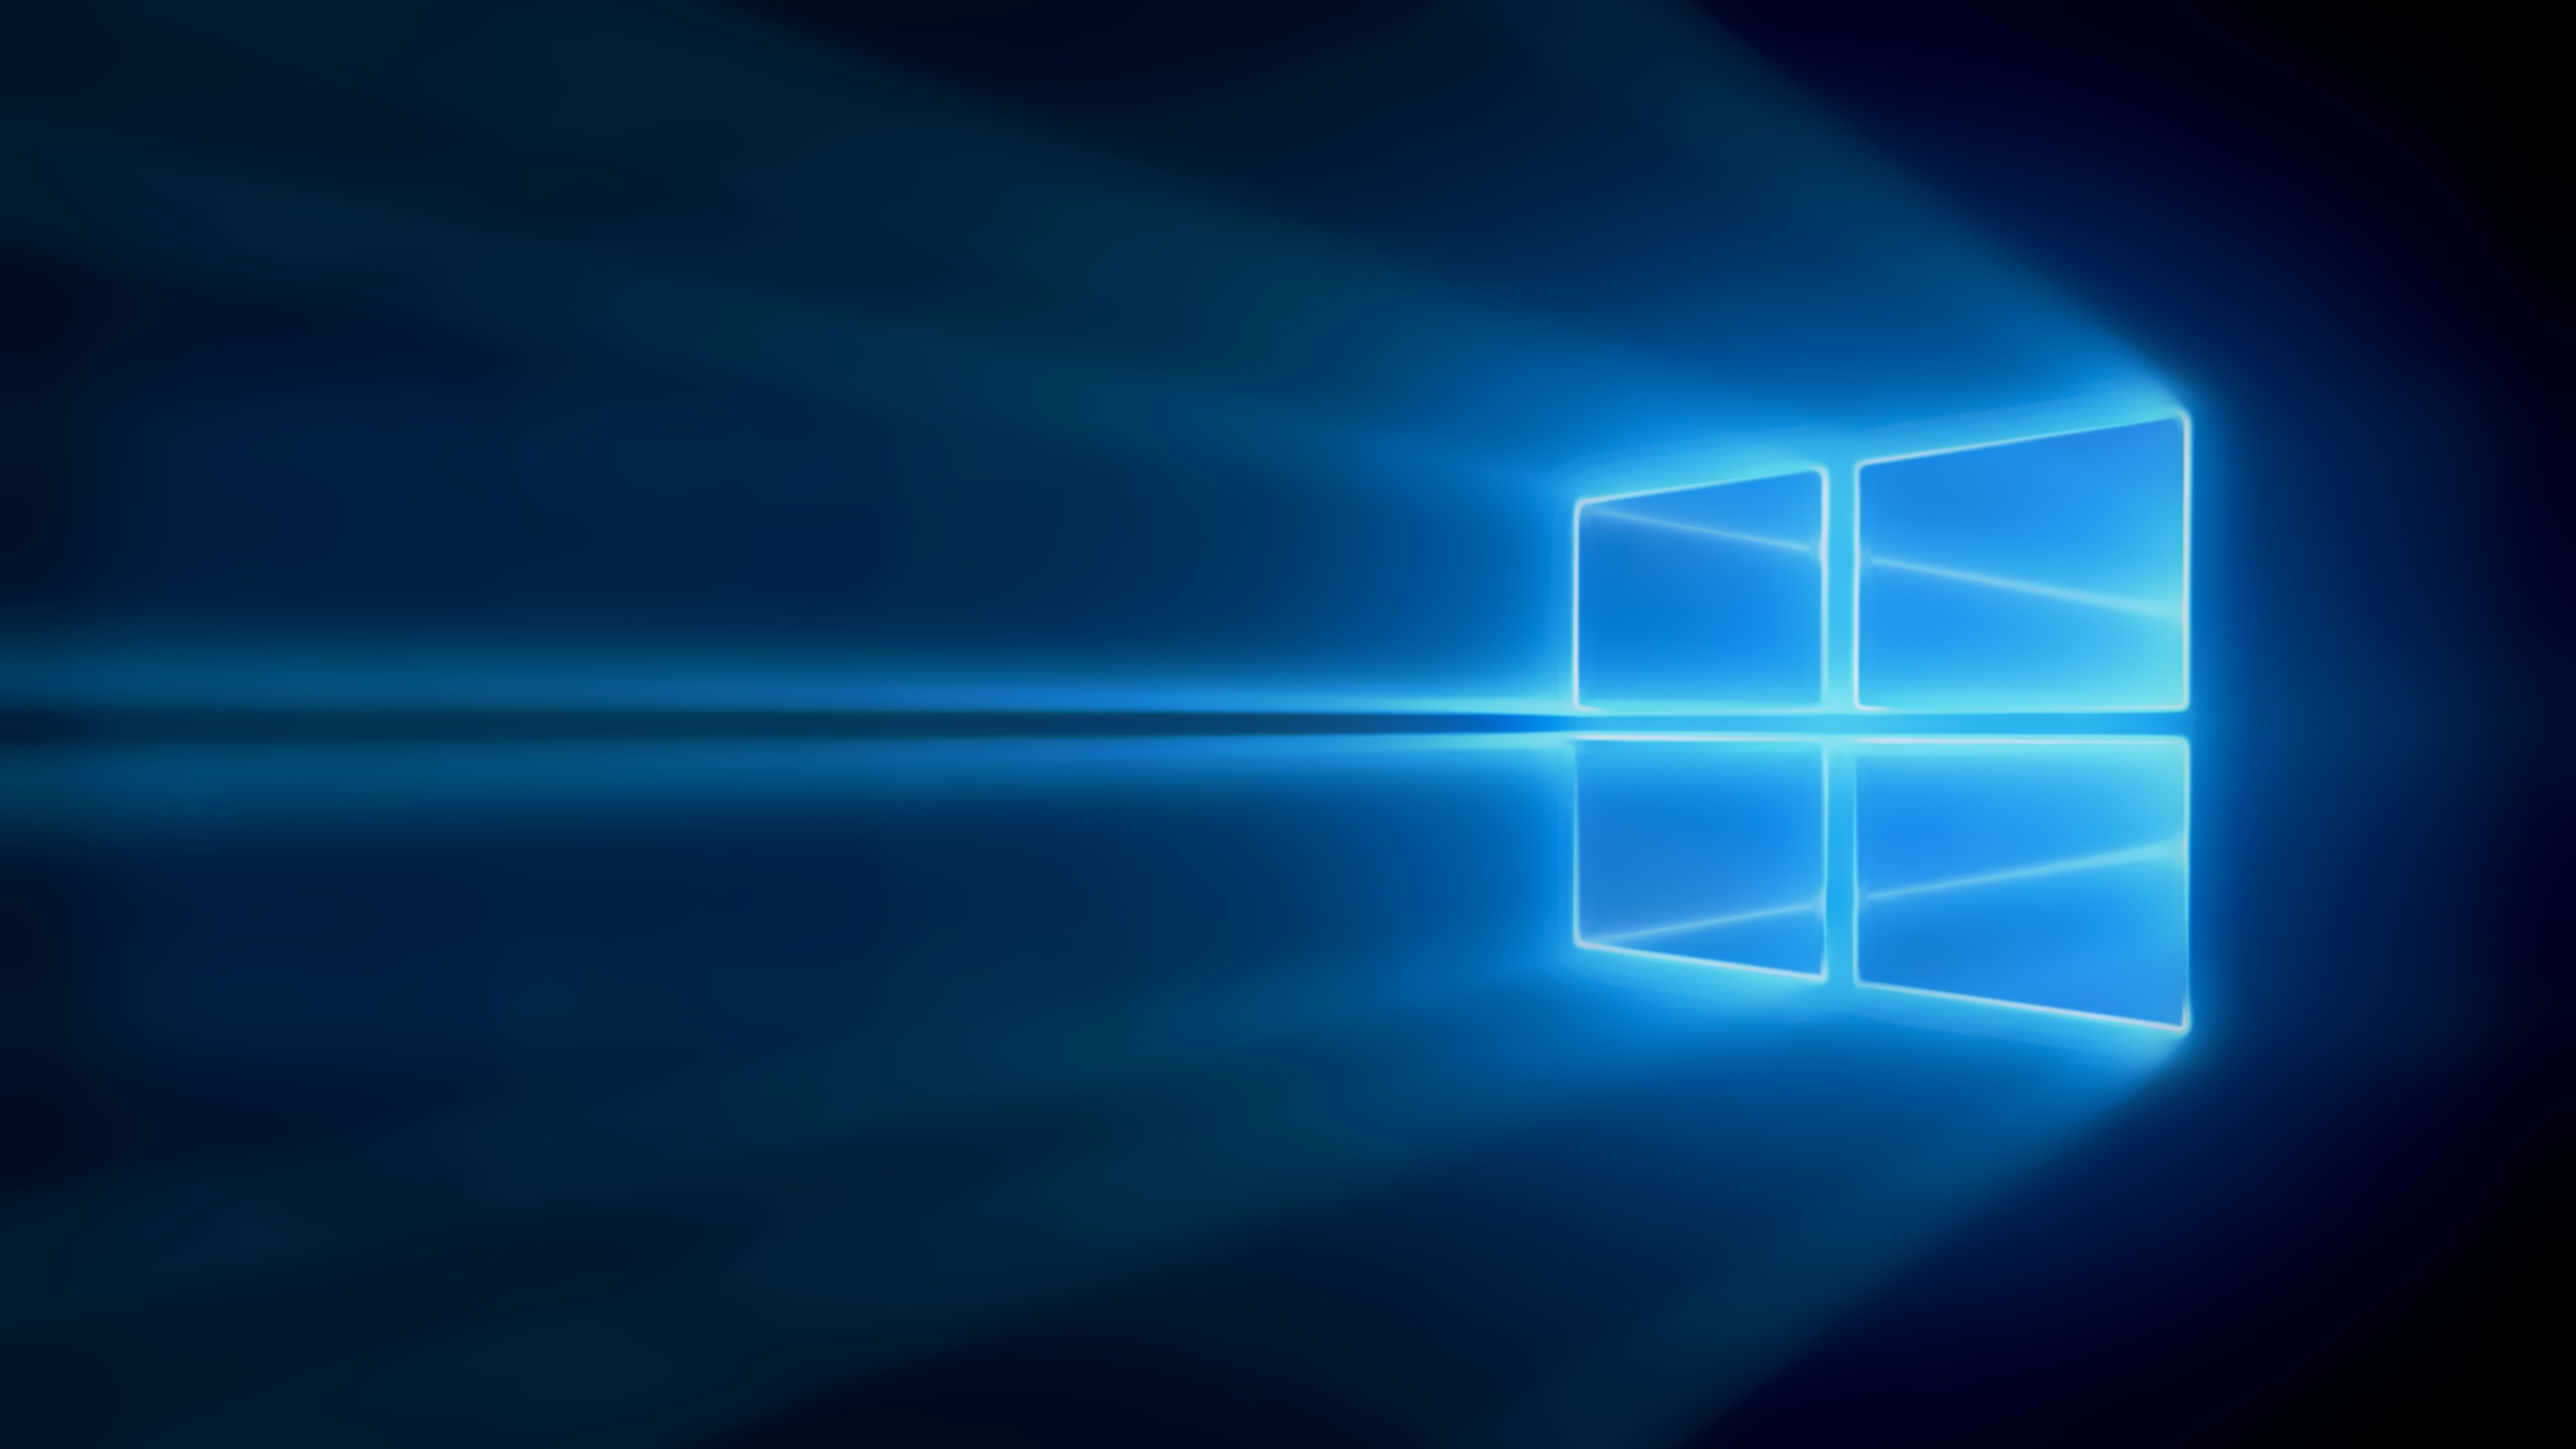 3840x2160 Microsoft Takes Down Windows 10 Preview Download Links Ahead of RTM